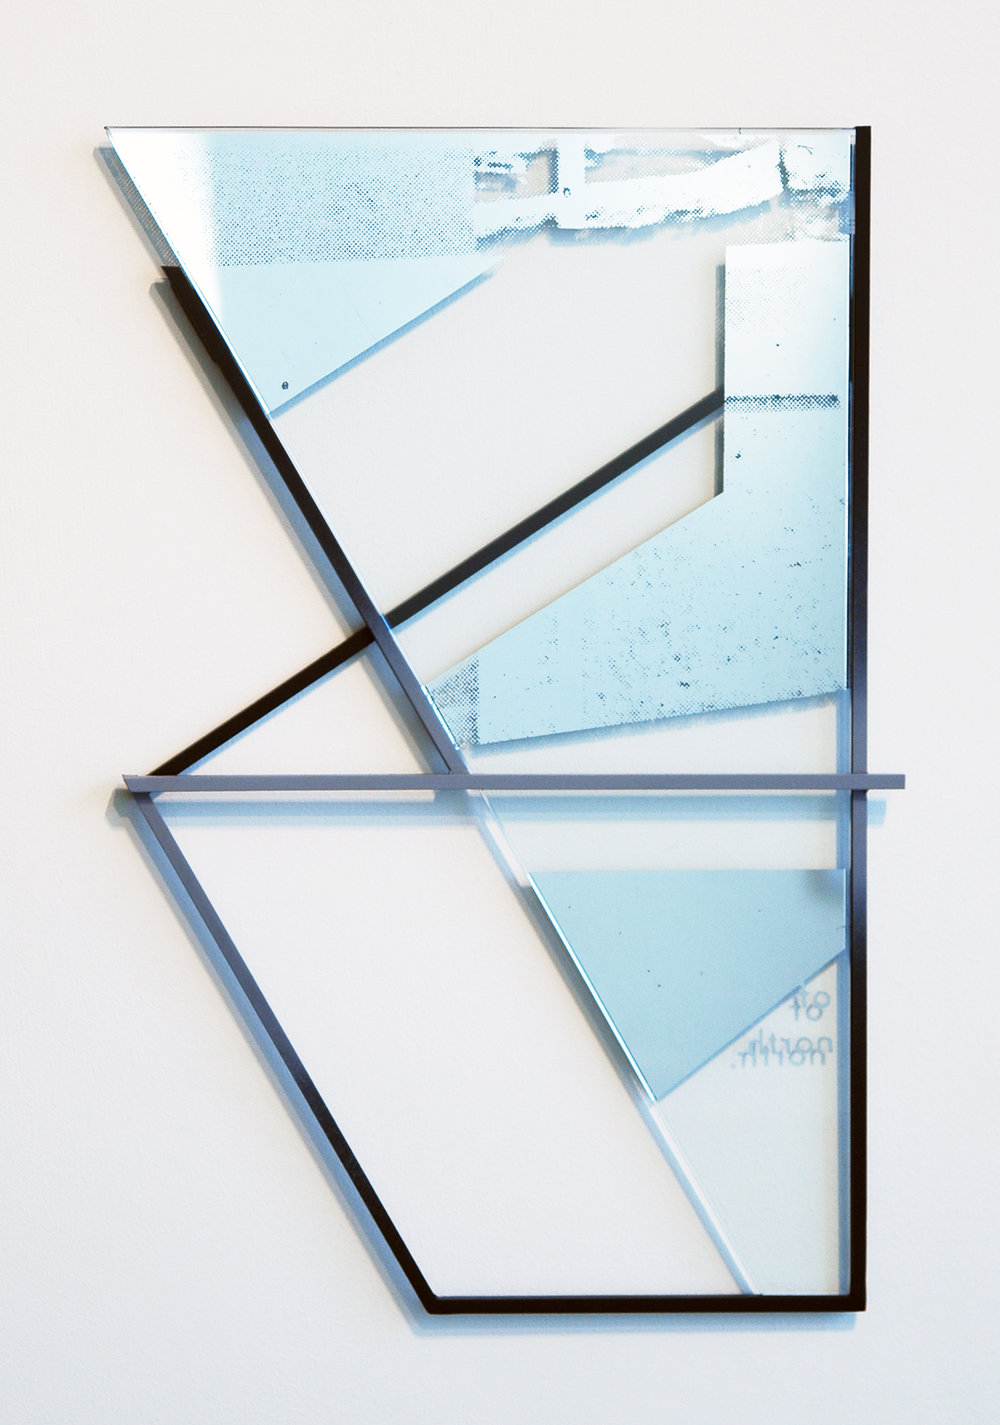 "JONATHAN RUNCIO   Untitled , mirror, screen-print, steel and paint, 19"" x 12.5"", 2013"